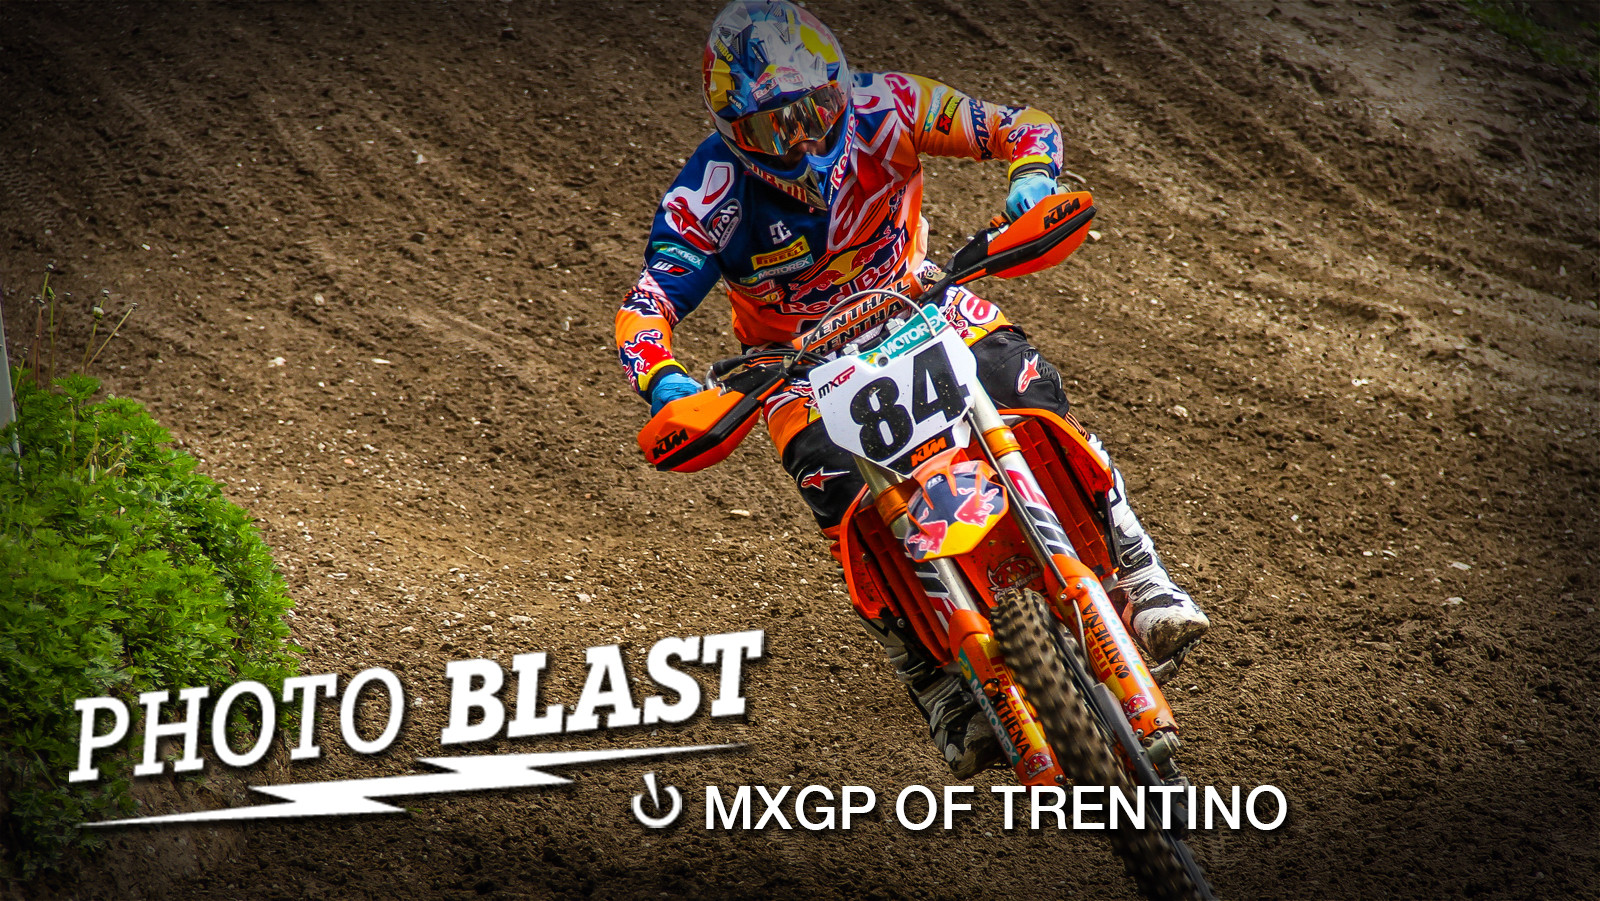 Jeffrey Herlings - Photo Blast: 2017 MXGP of Trentino - Motocross Pictures - Vital MX